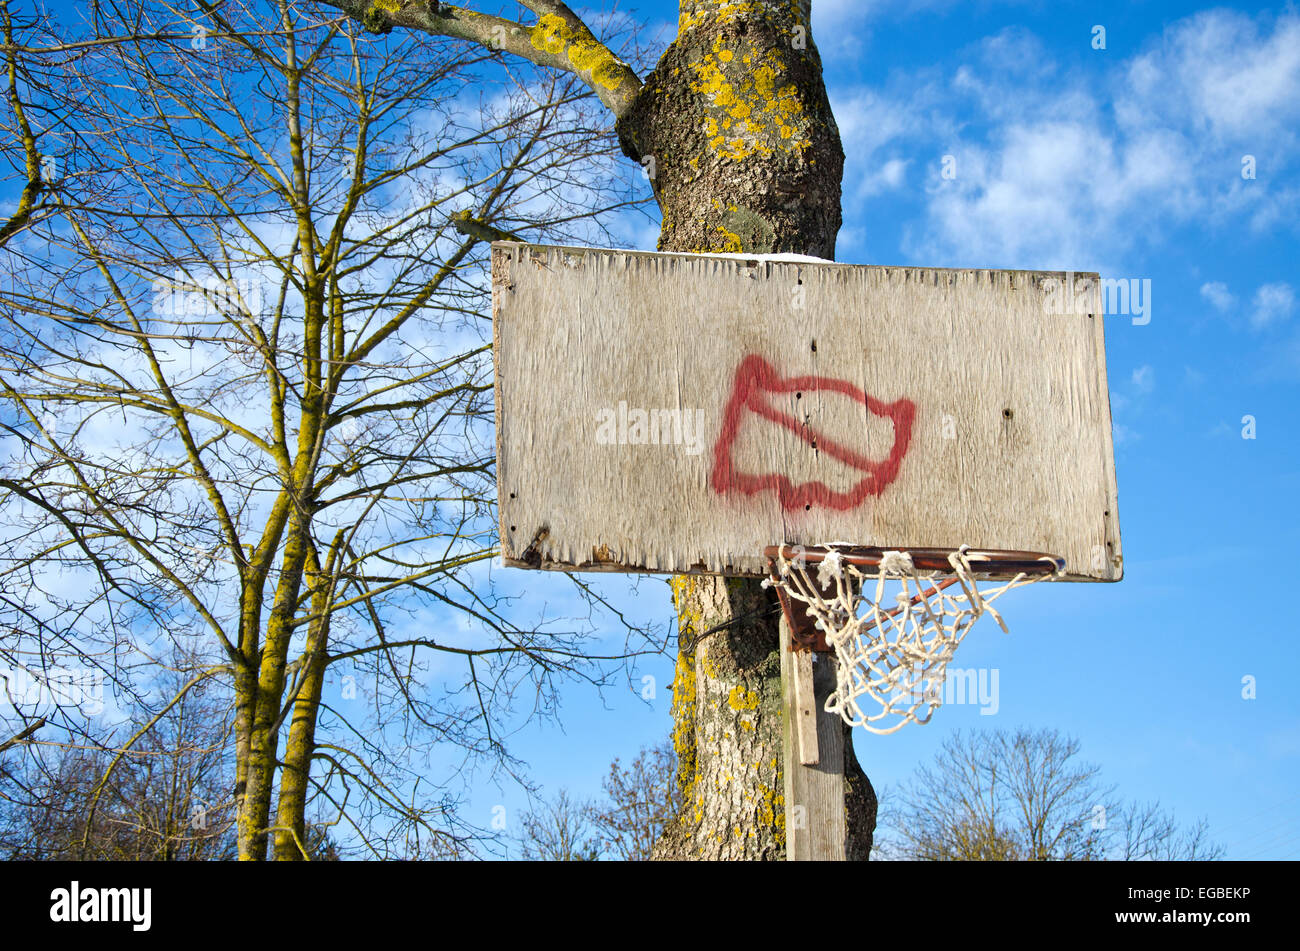 Basketball hoop primitive board with broken net on tree in city park - Stock Image